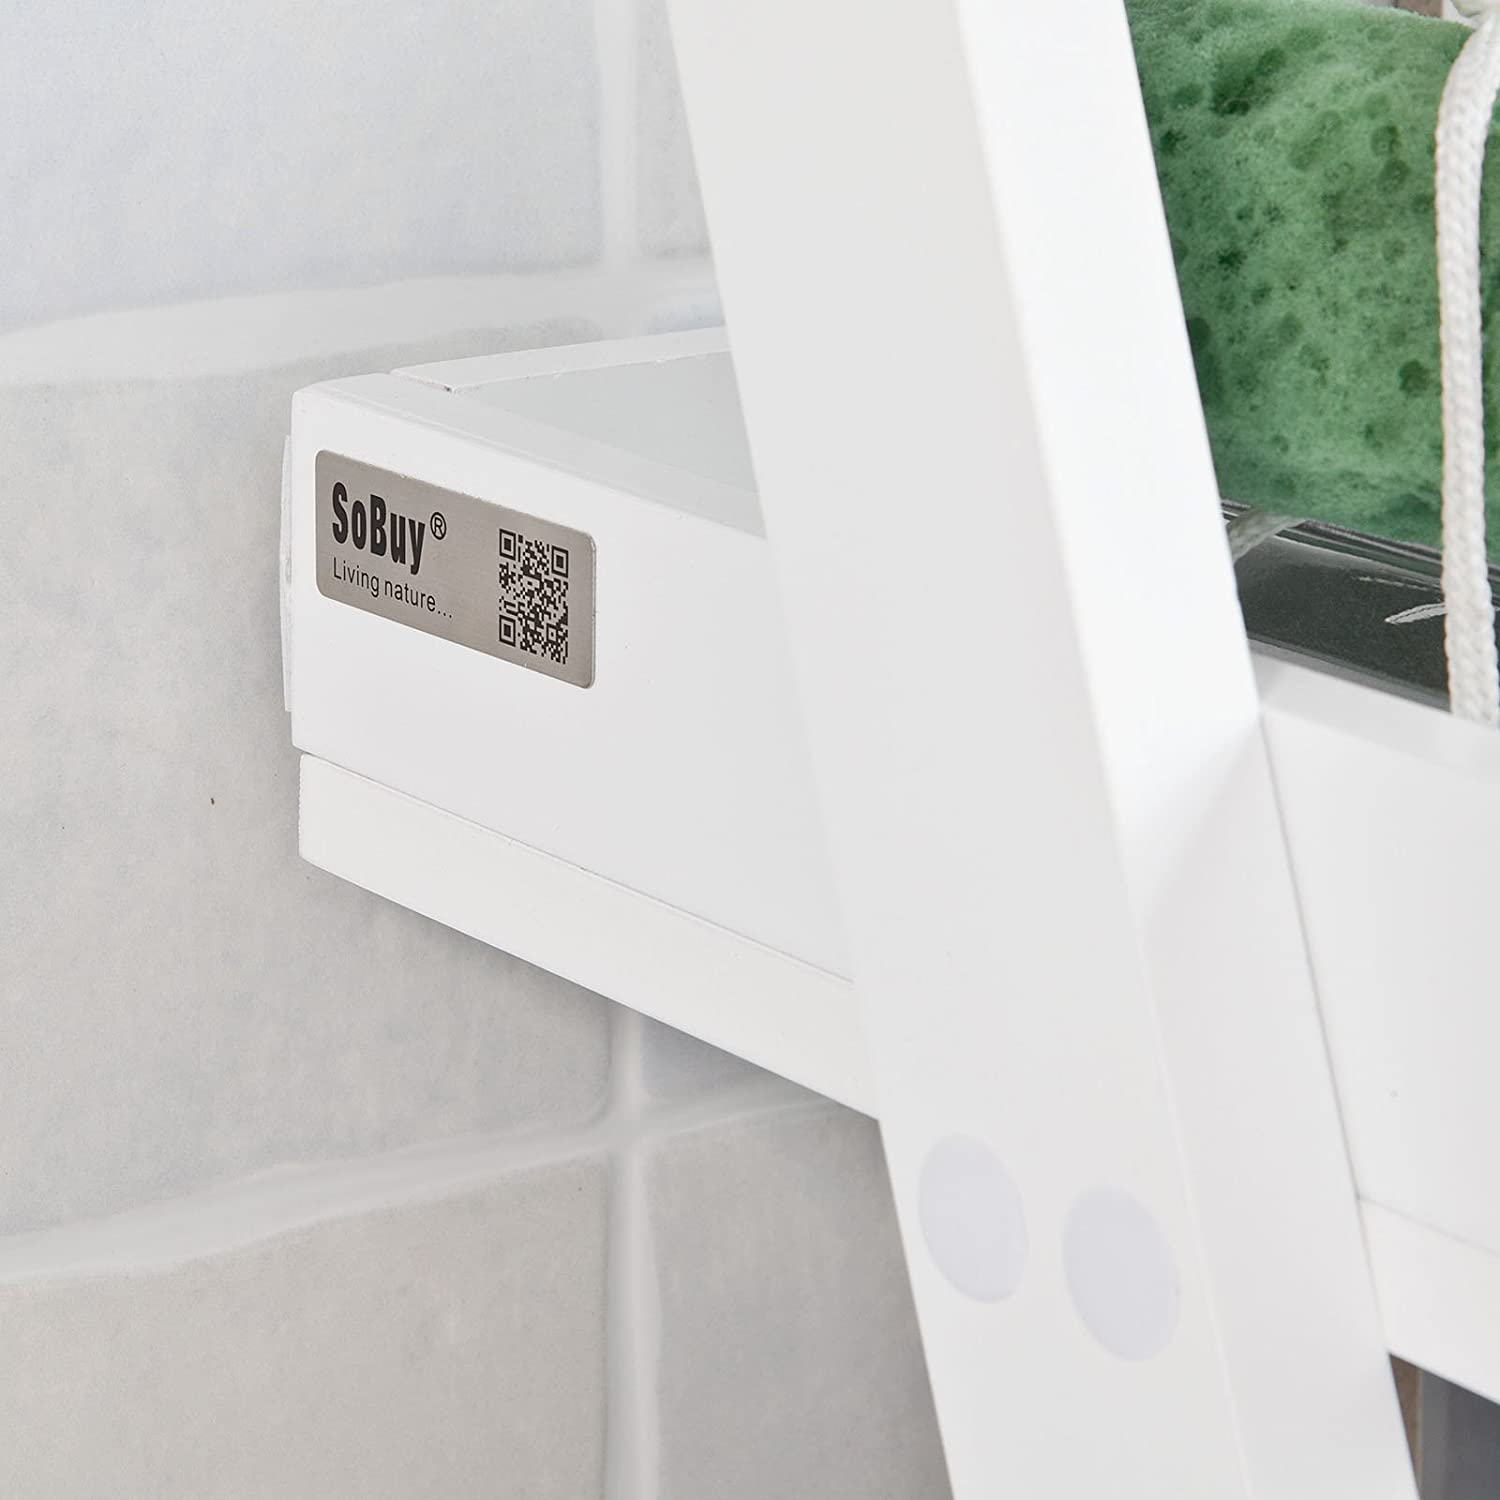 SoBuy/® pared estanter/ía toallero frg117/ de W estanter/ía de pared para ba/ño con 2/ estantes y una barra